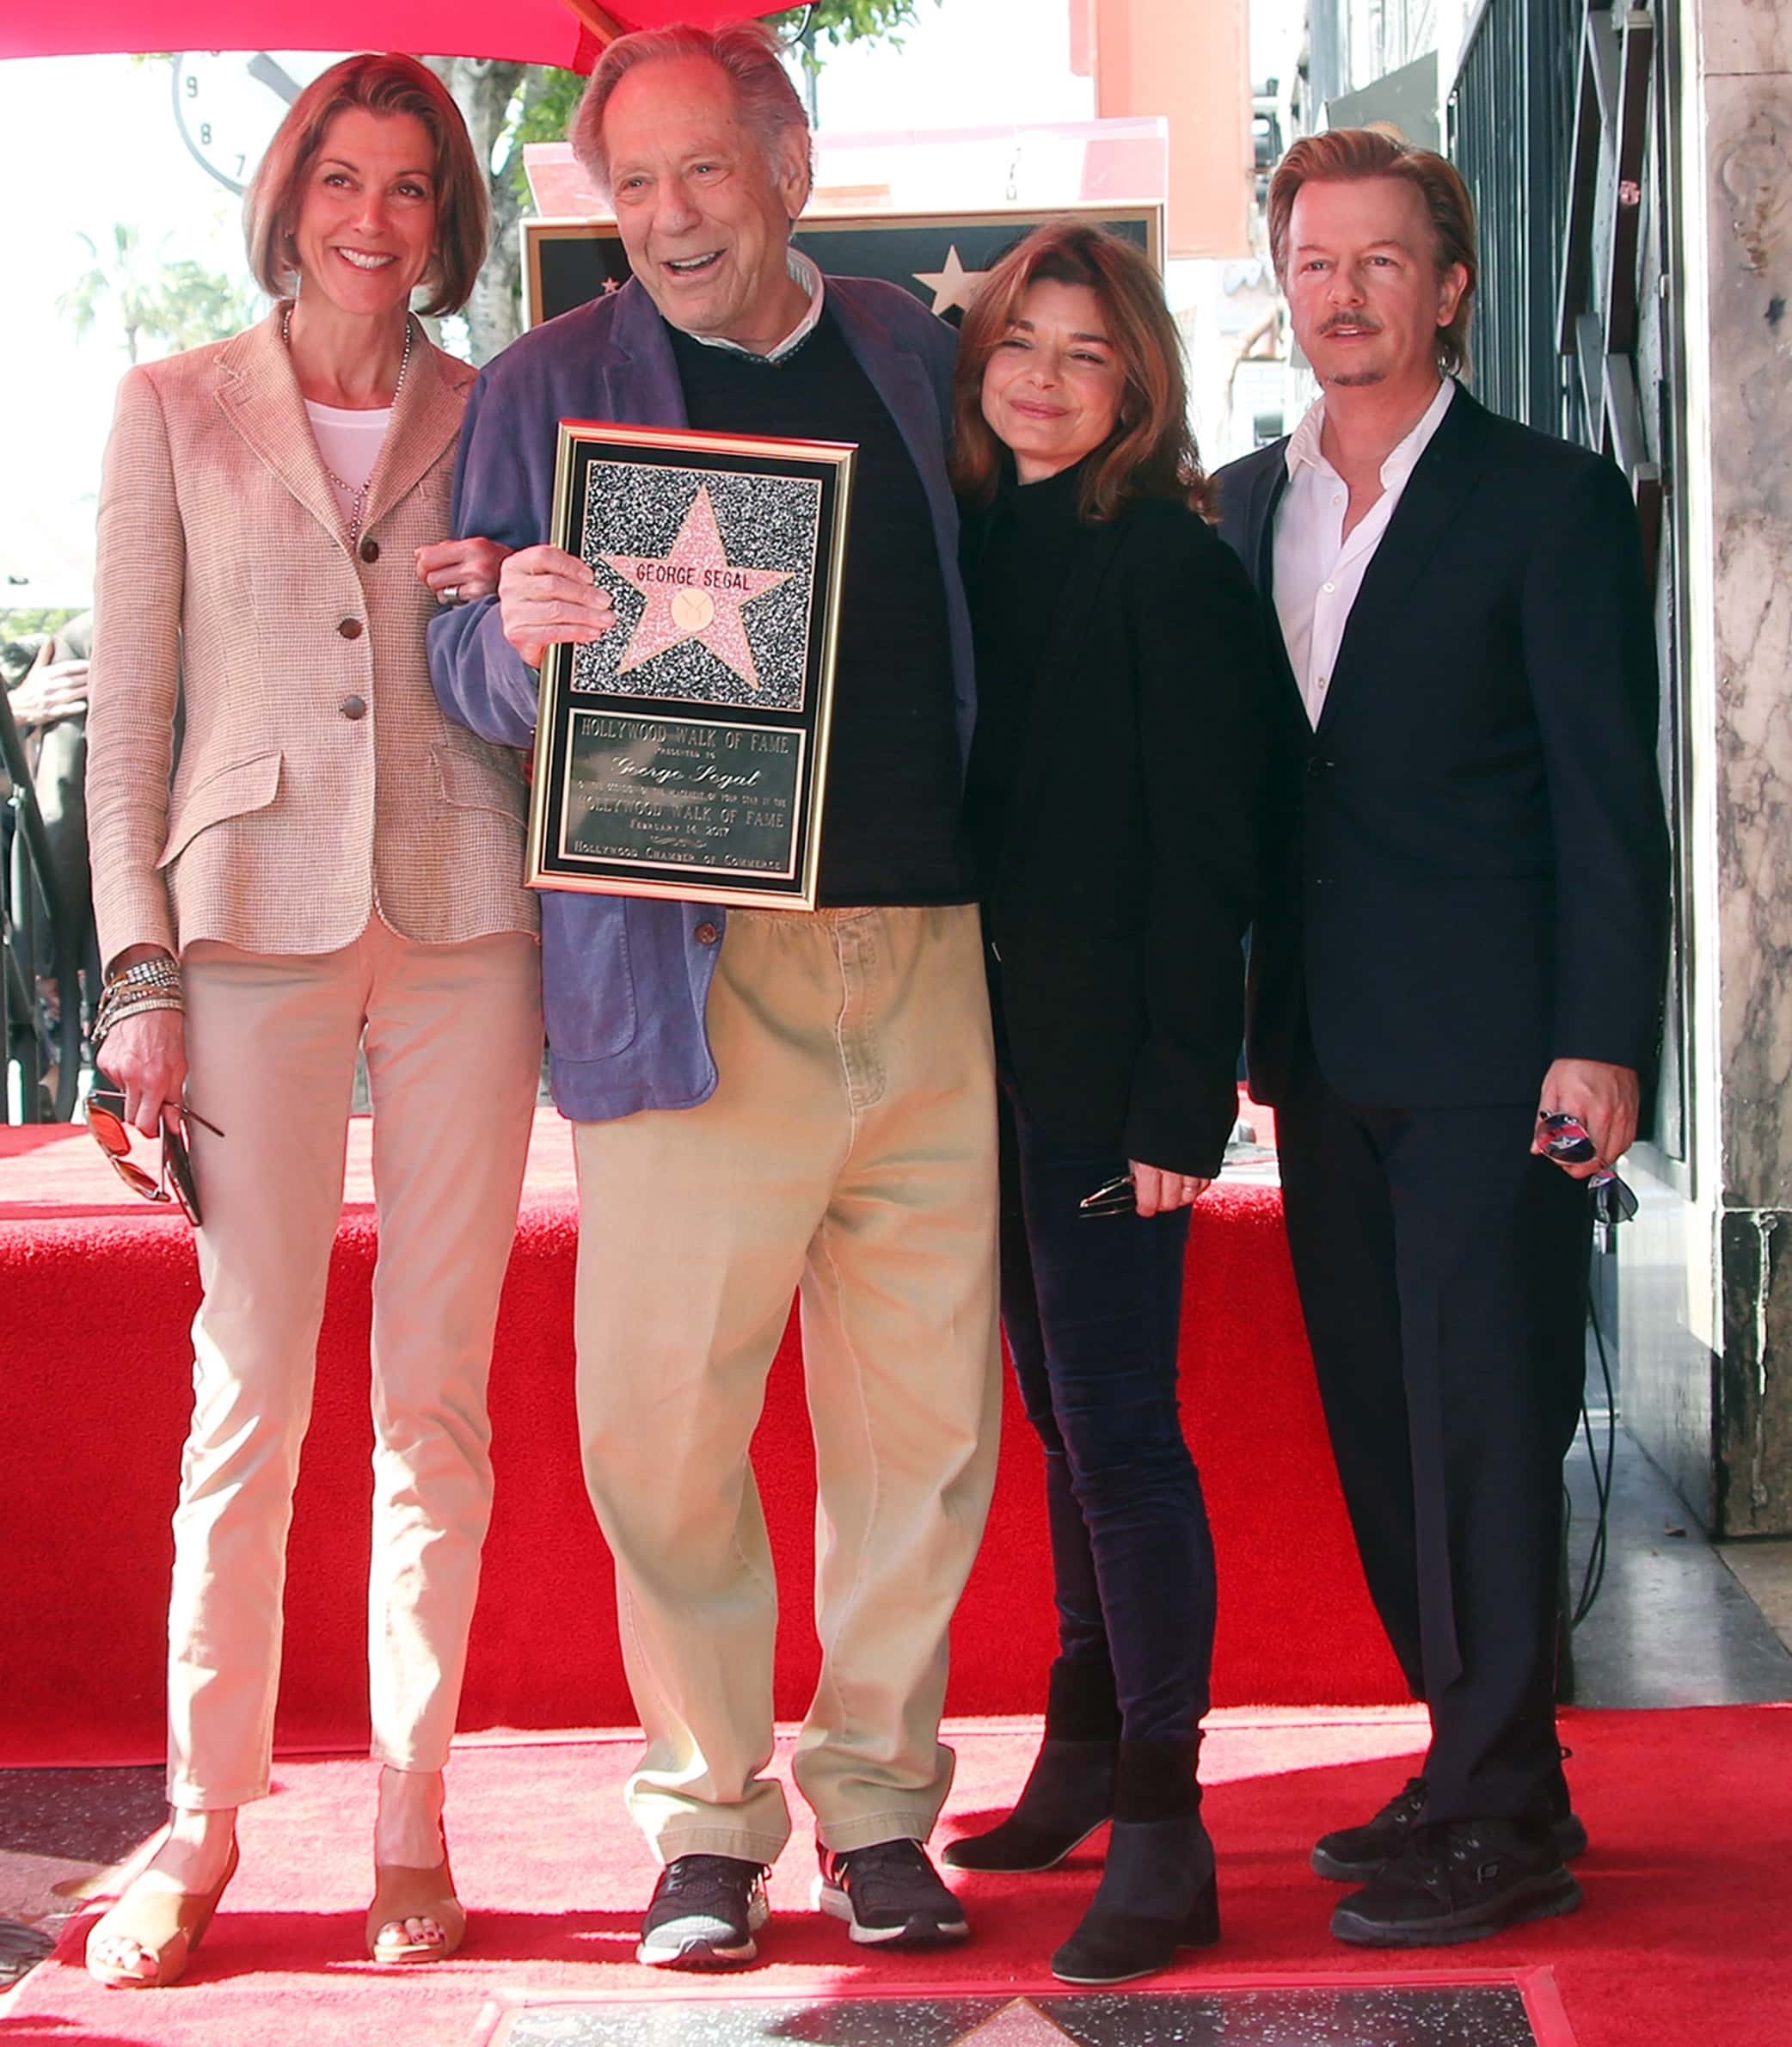 Actors Wendie Malick, George Segal, Laura San Giacomo, and David Spade attend George Segal being honored with a Star on the Hollywood Walk of Fame